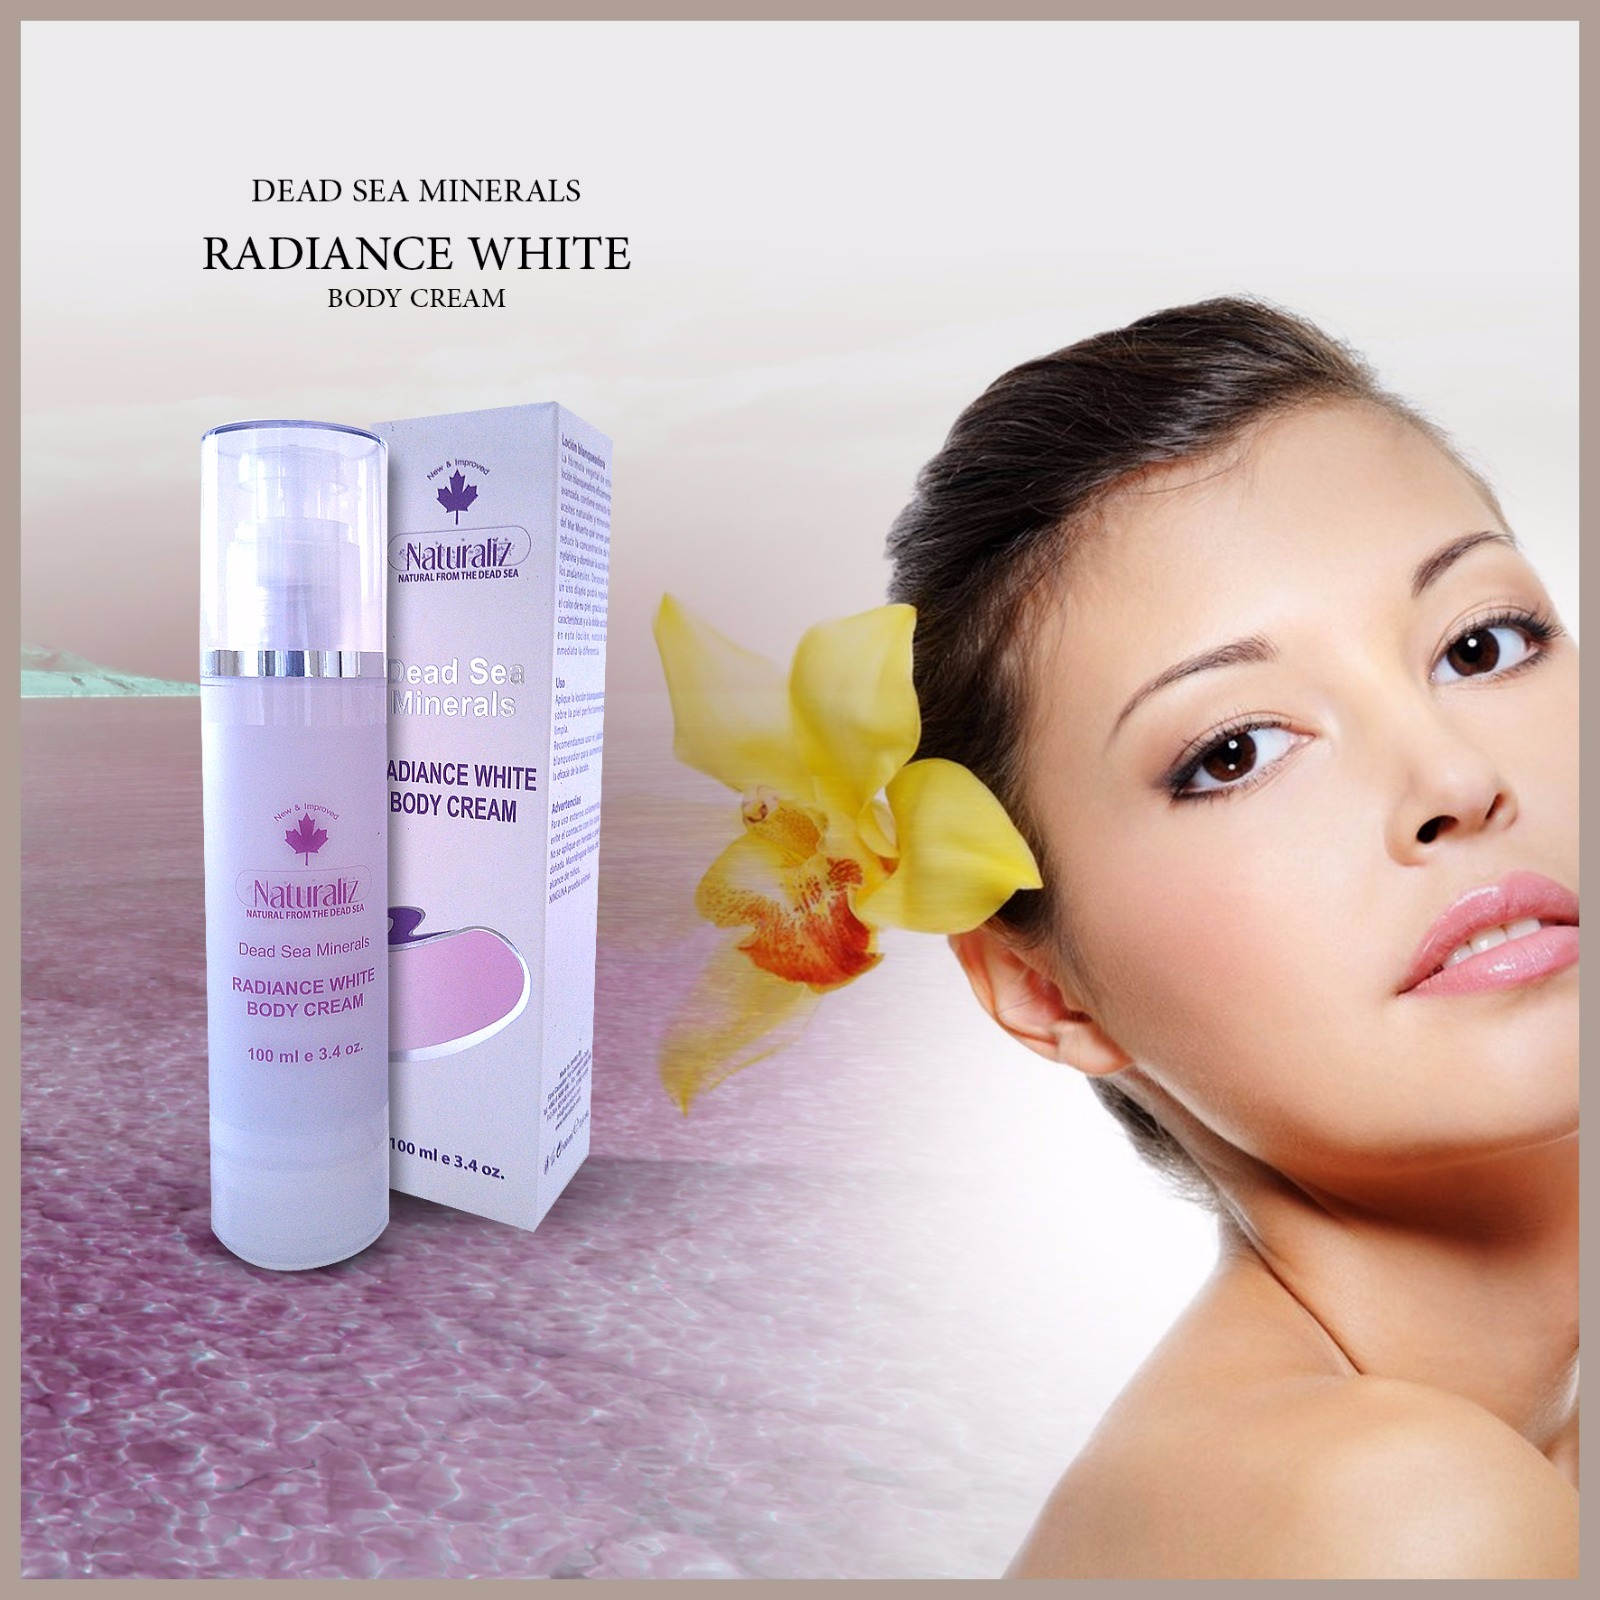 Radiance White Body Cream